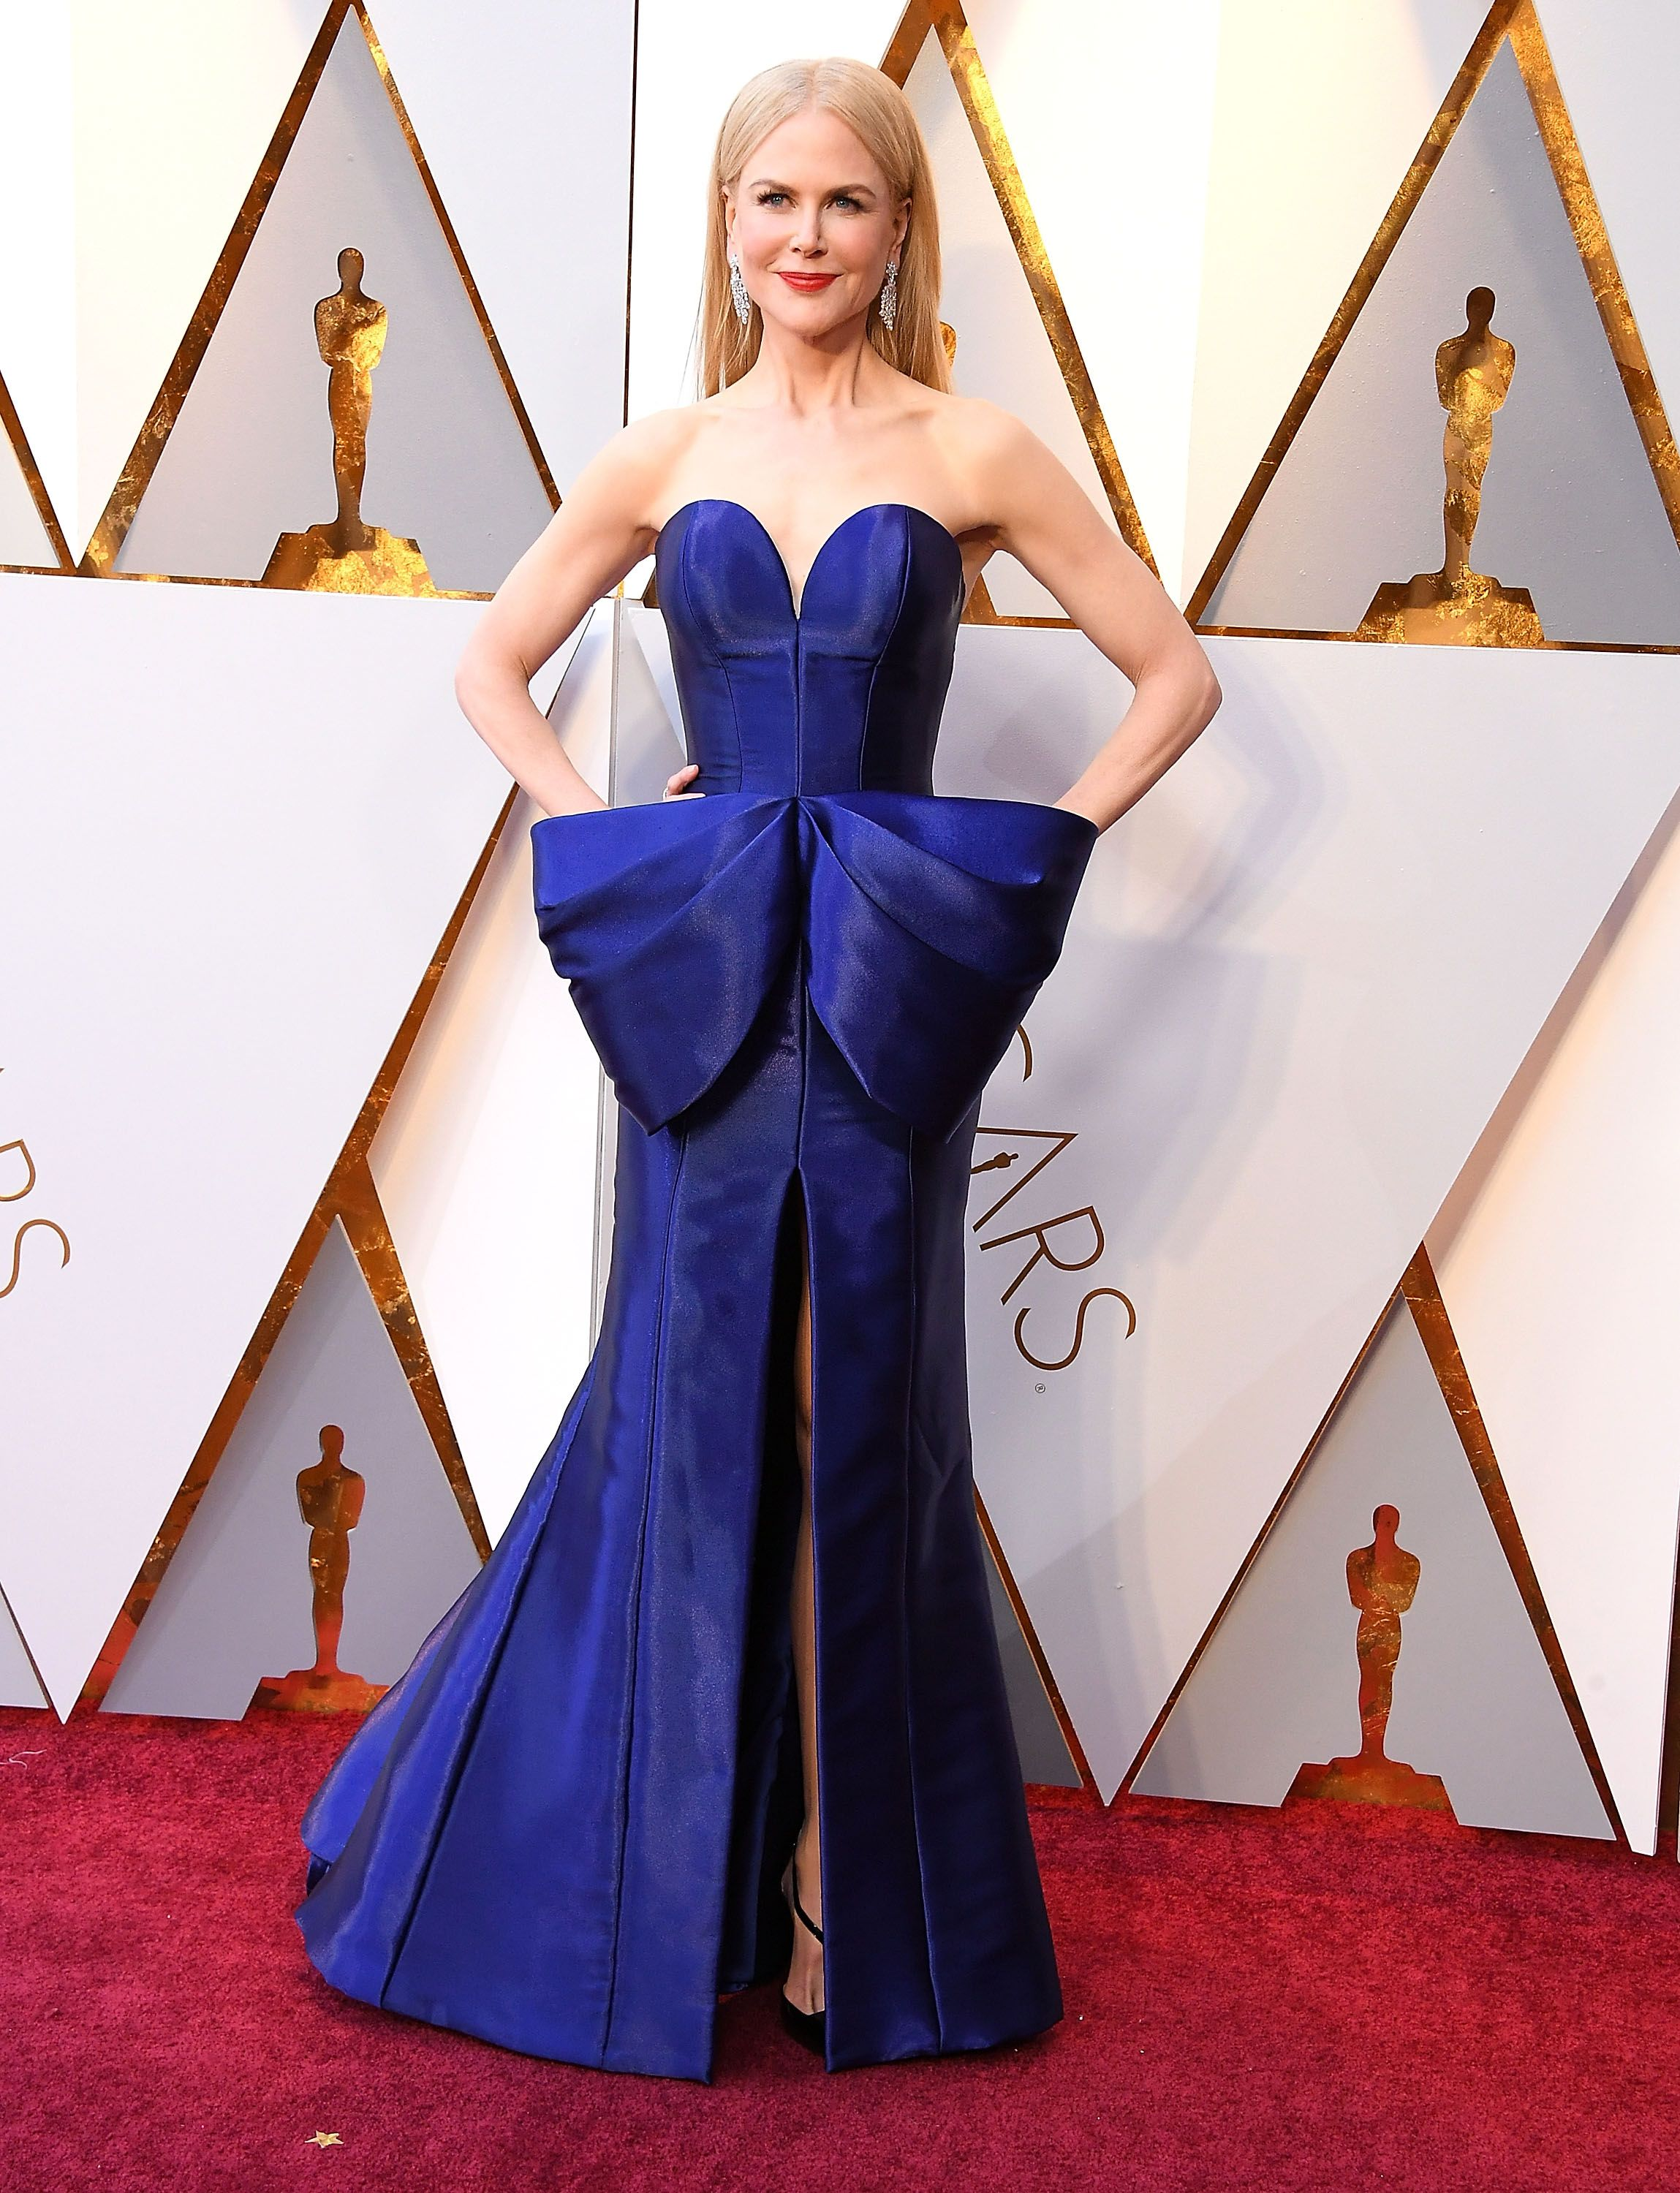 Kidman wore a show-stopping cobalt Armani Prive gown with a structured silhouette and oversized bow embellishment for the 90th annual Academy Awards.